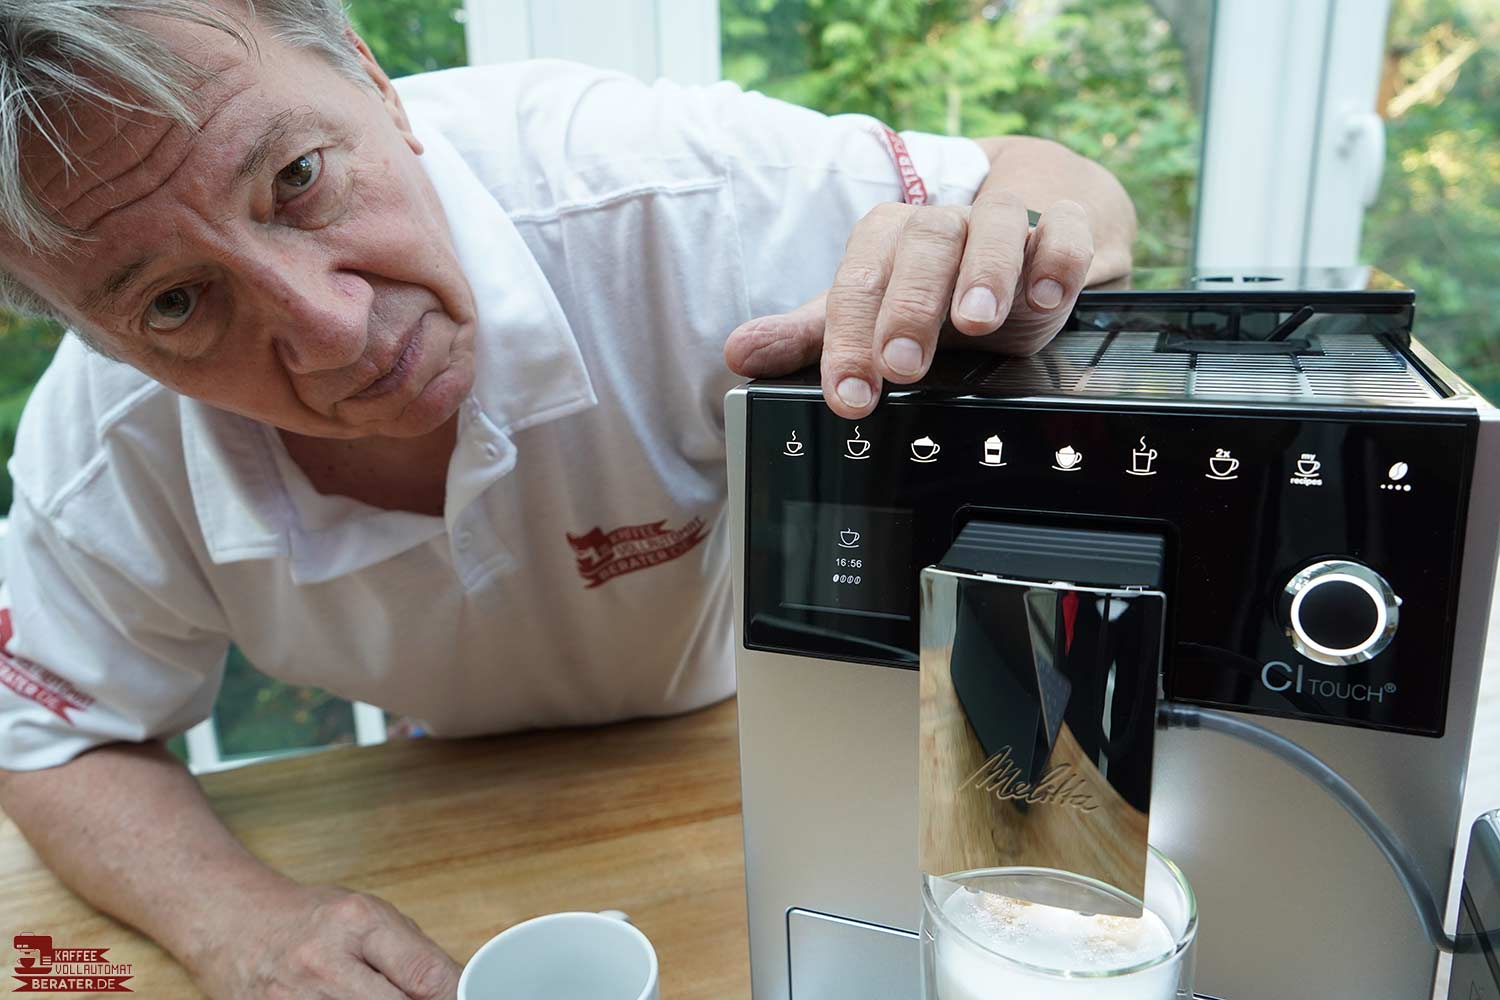 Melitta-CI Touch - kein echtes Touch Display